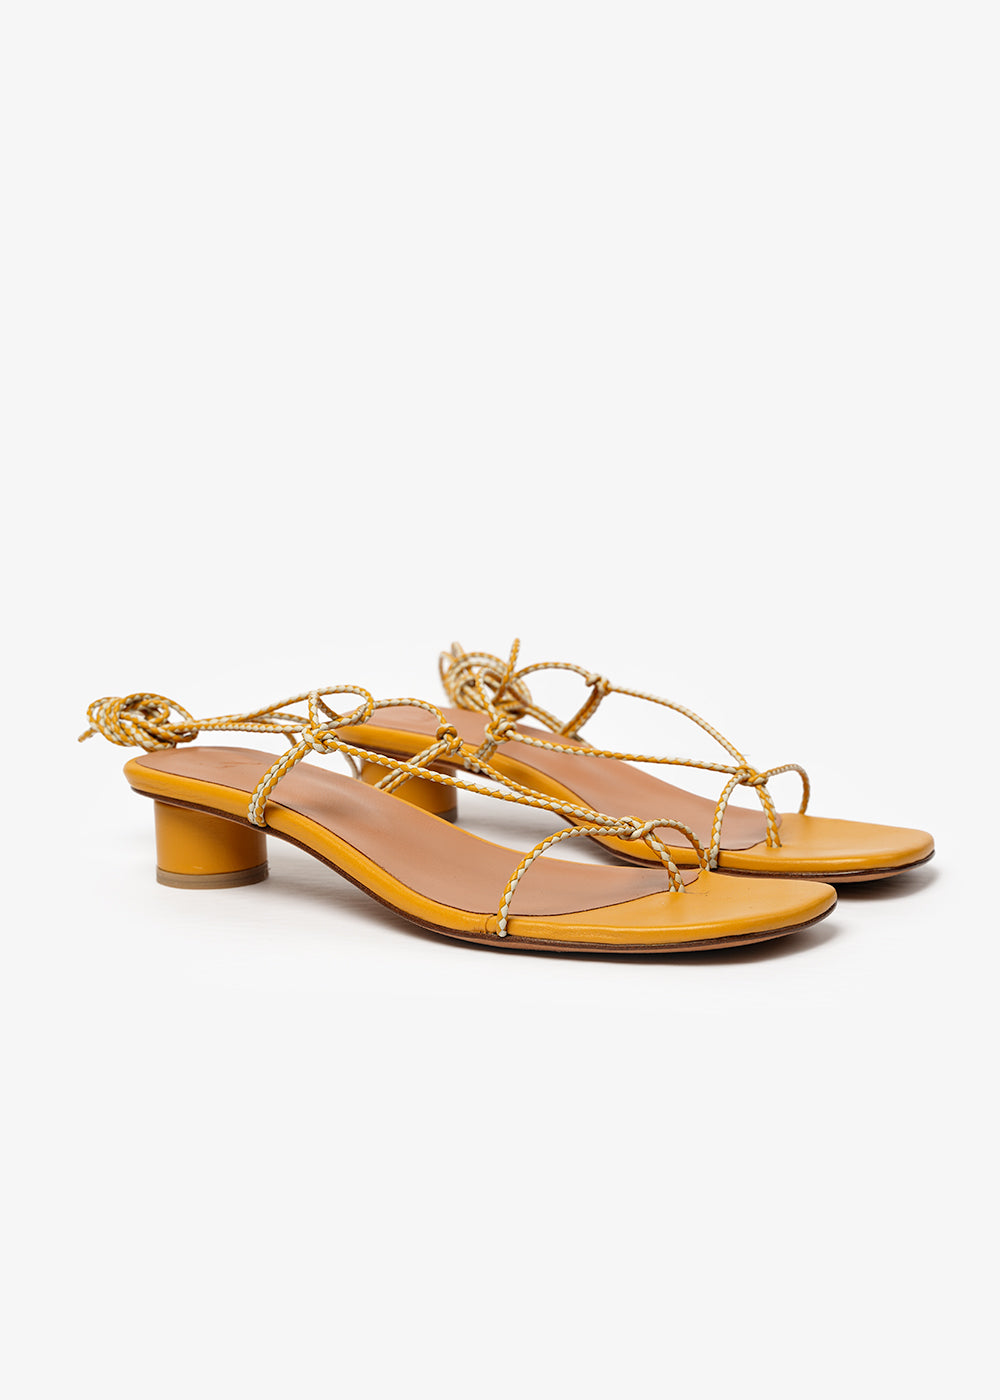 LoQ Ochre Dora Sandals — Shop sustainable fashion and slow fashion at New Classics Studios